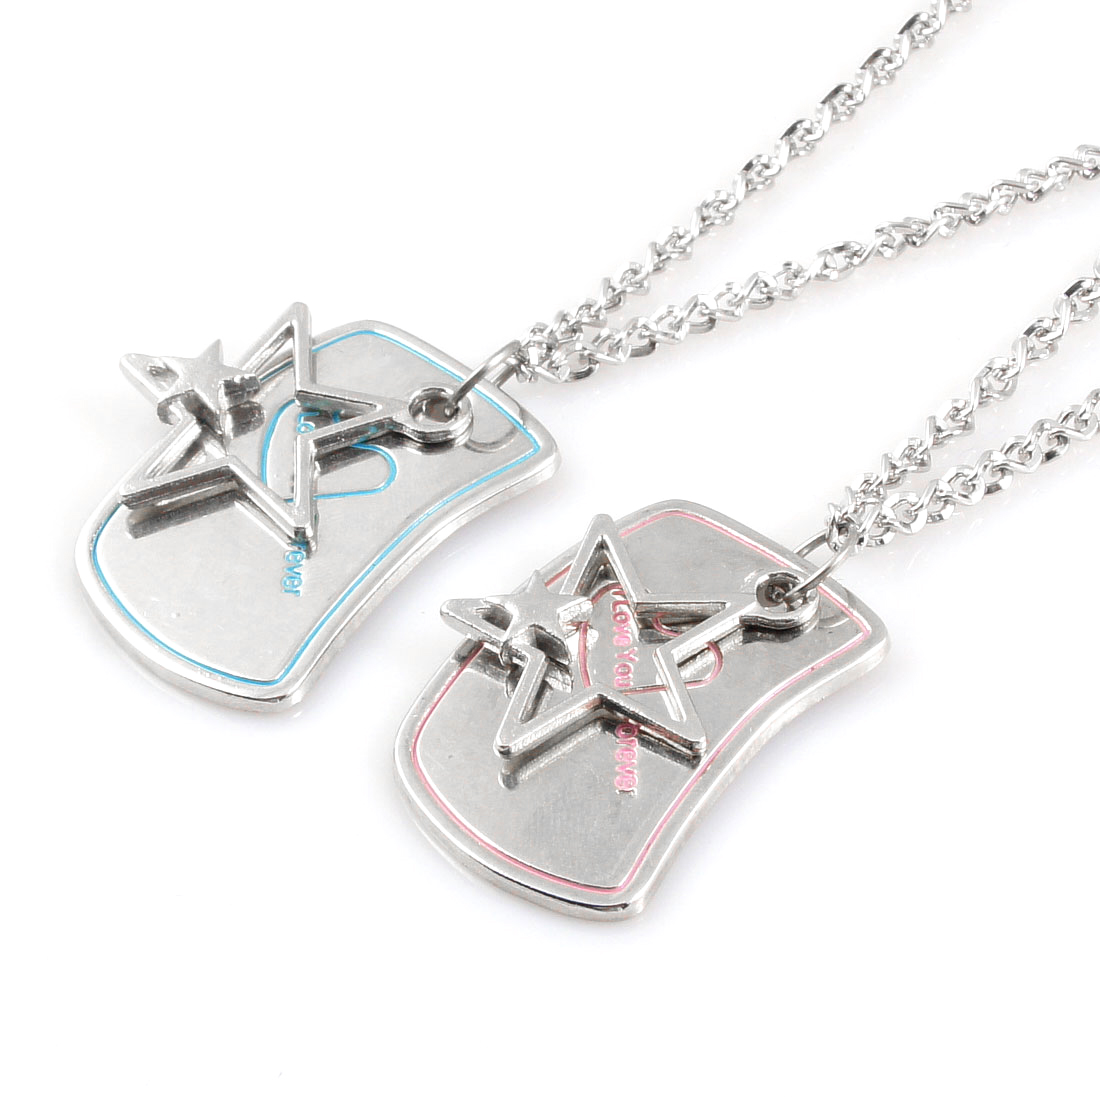 Lovers Silver Tone 50cm Girth Metal Star Shaped Pendant Necklace 2 Pcs